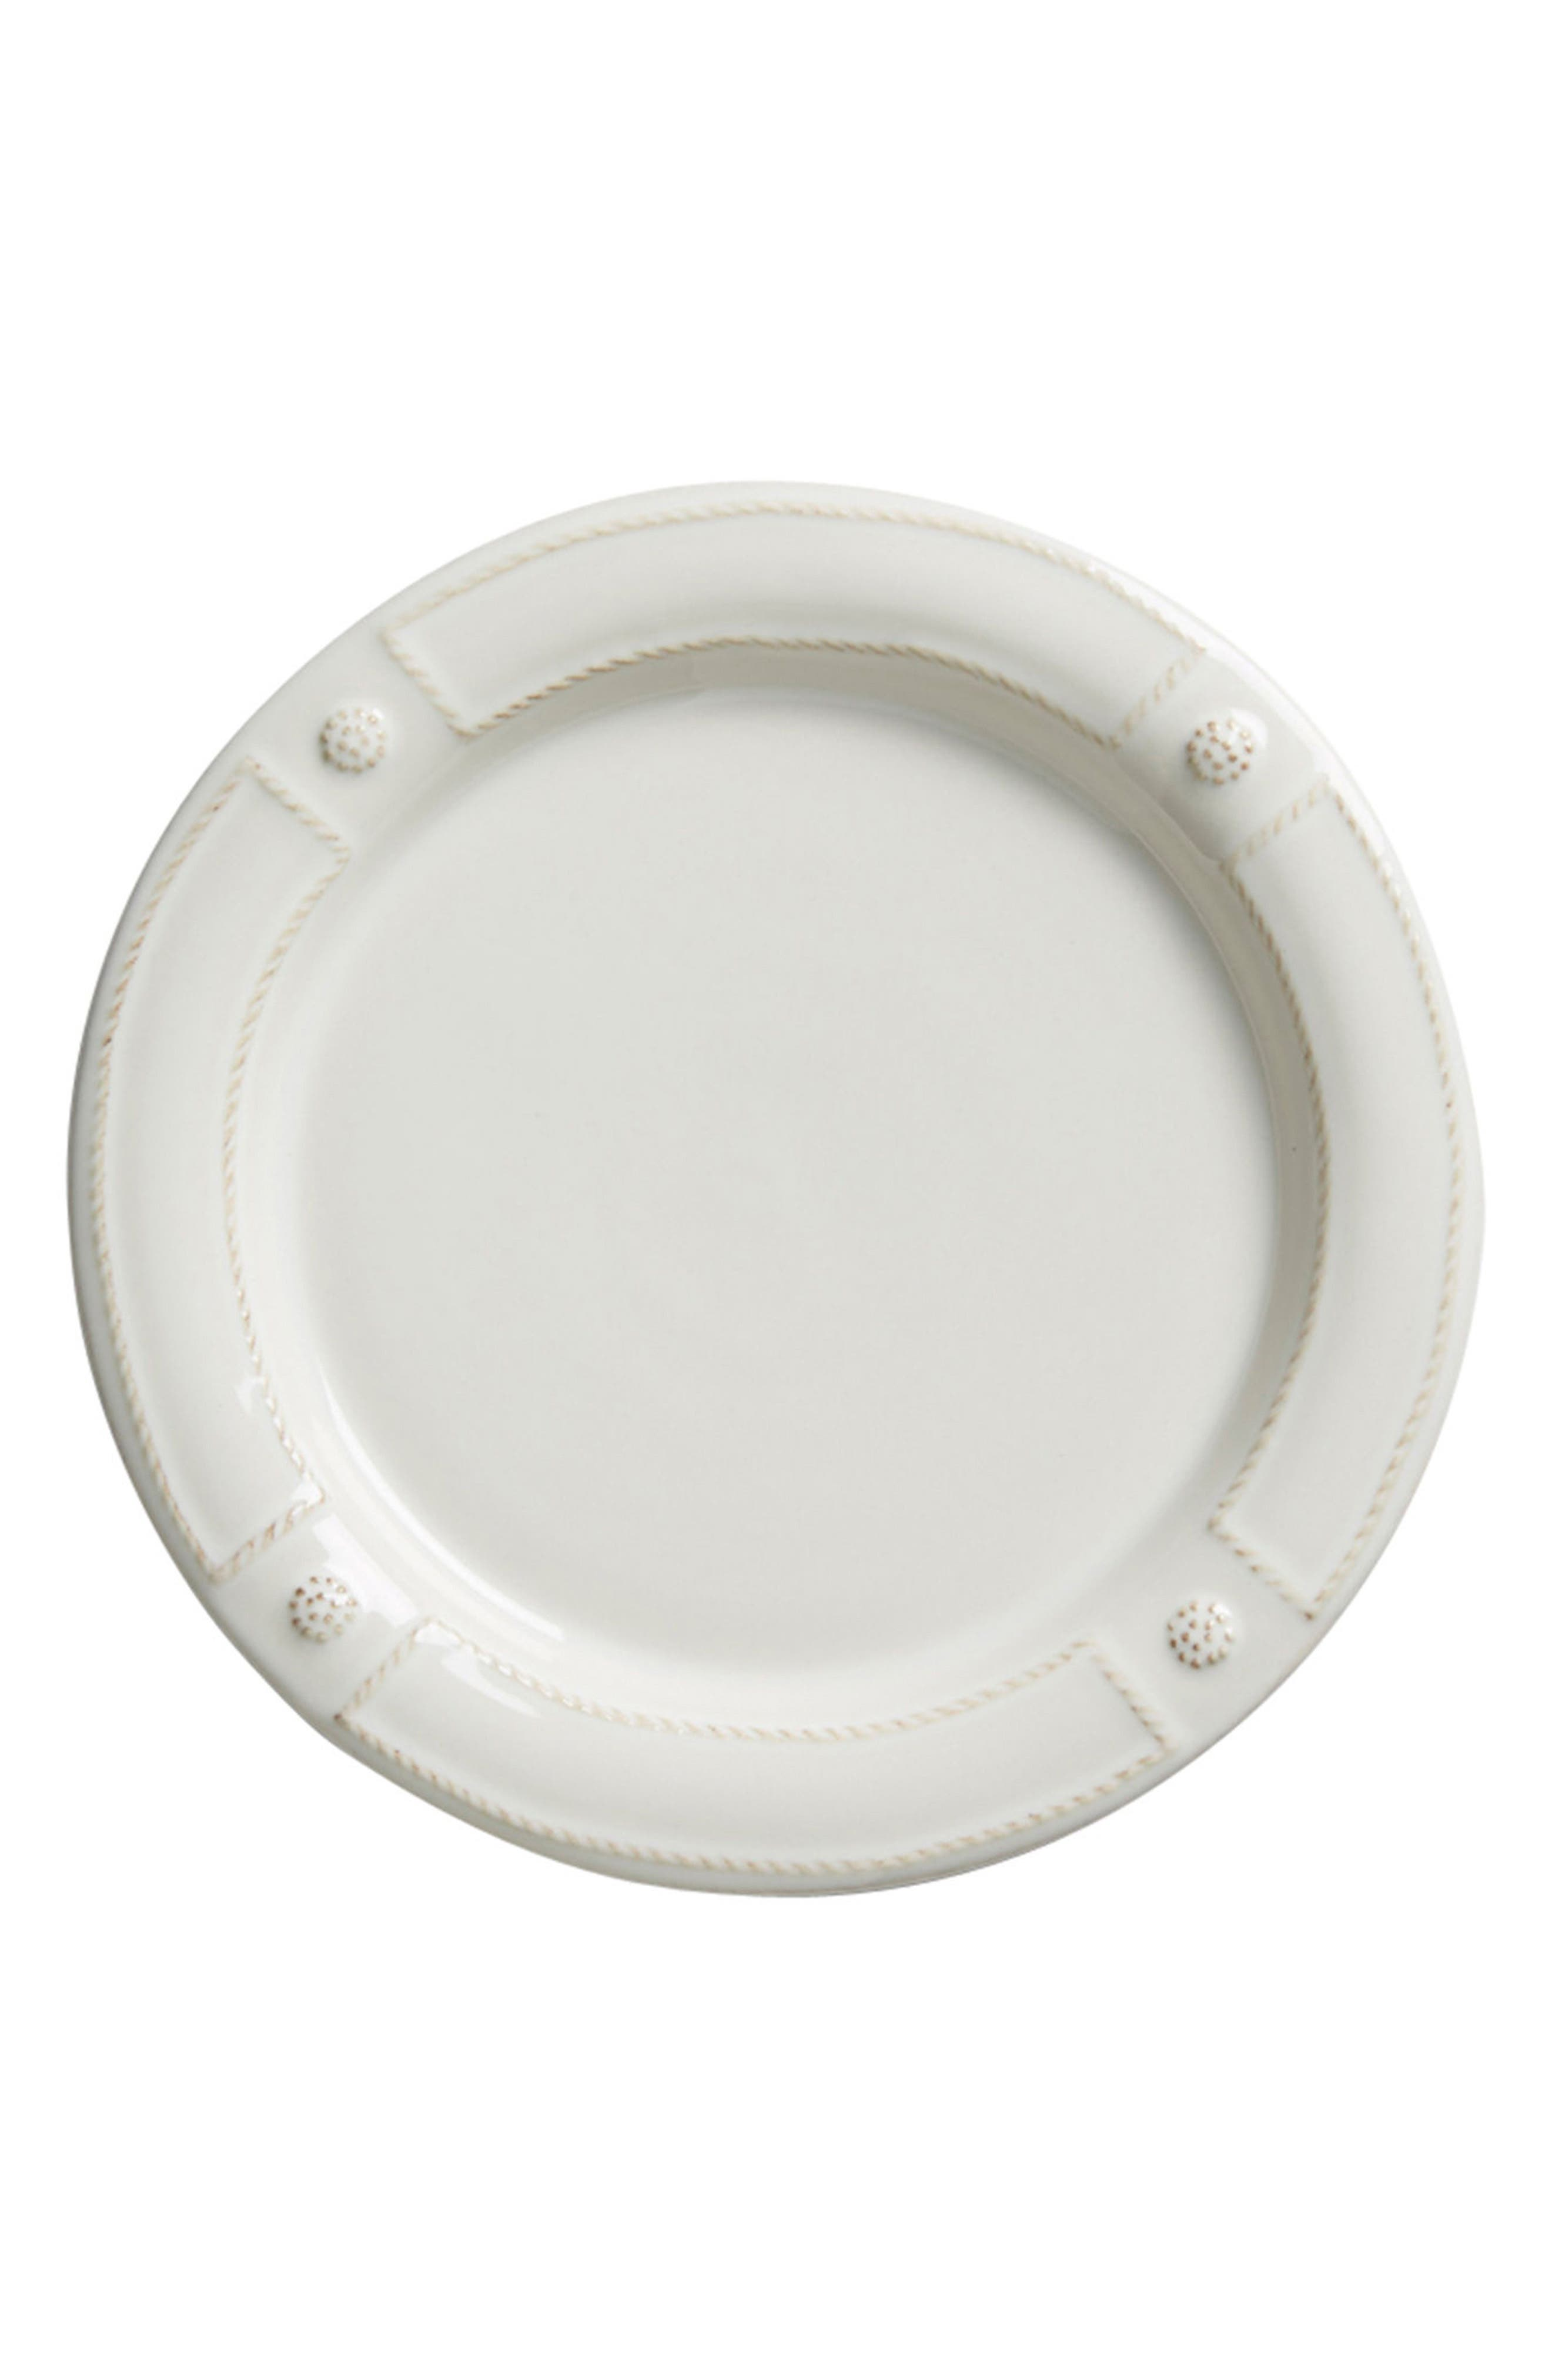 Berry & Thread French Panel Ceramic Salad Plate,                         Main,                         color, Whitewash